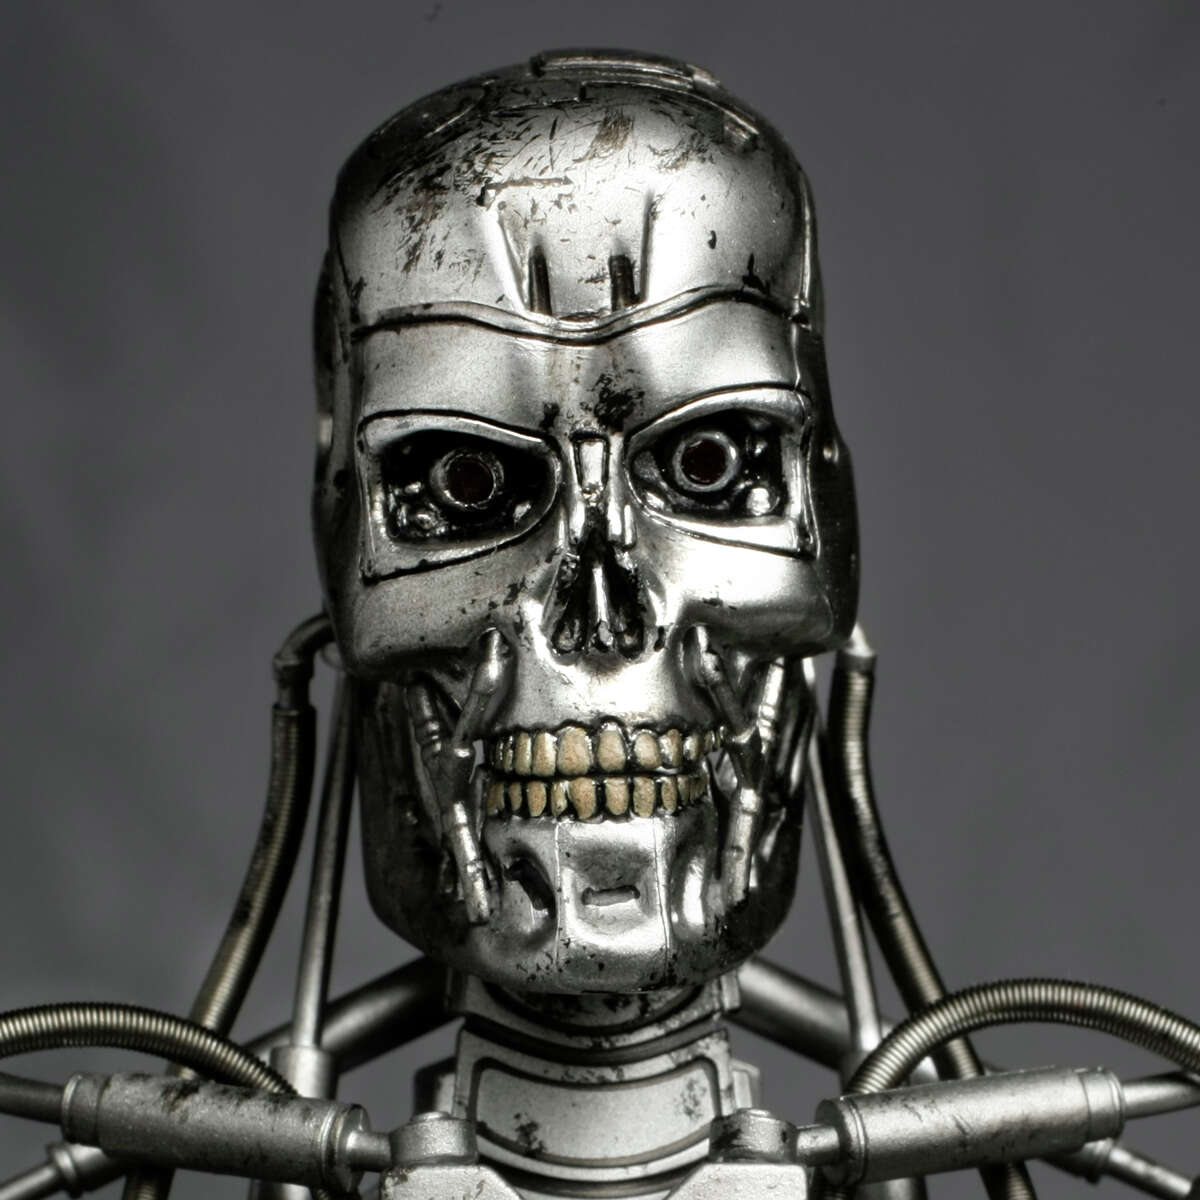 Science fiction has long contemplated the risk that our increasingly capable computers and robots could one day decide they'd be better off without us, or using us as their energy source. Now, philosophers and scientists at Britain's Cambridge University have proposed giving the question serious thought with a new Center for the Study of Existential Risk.